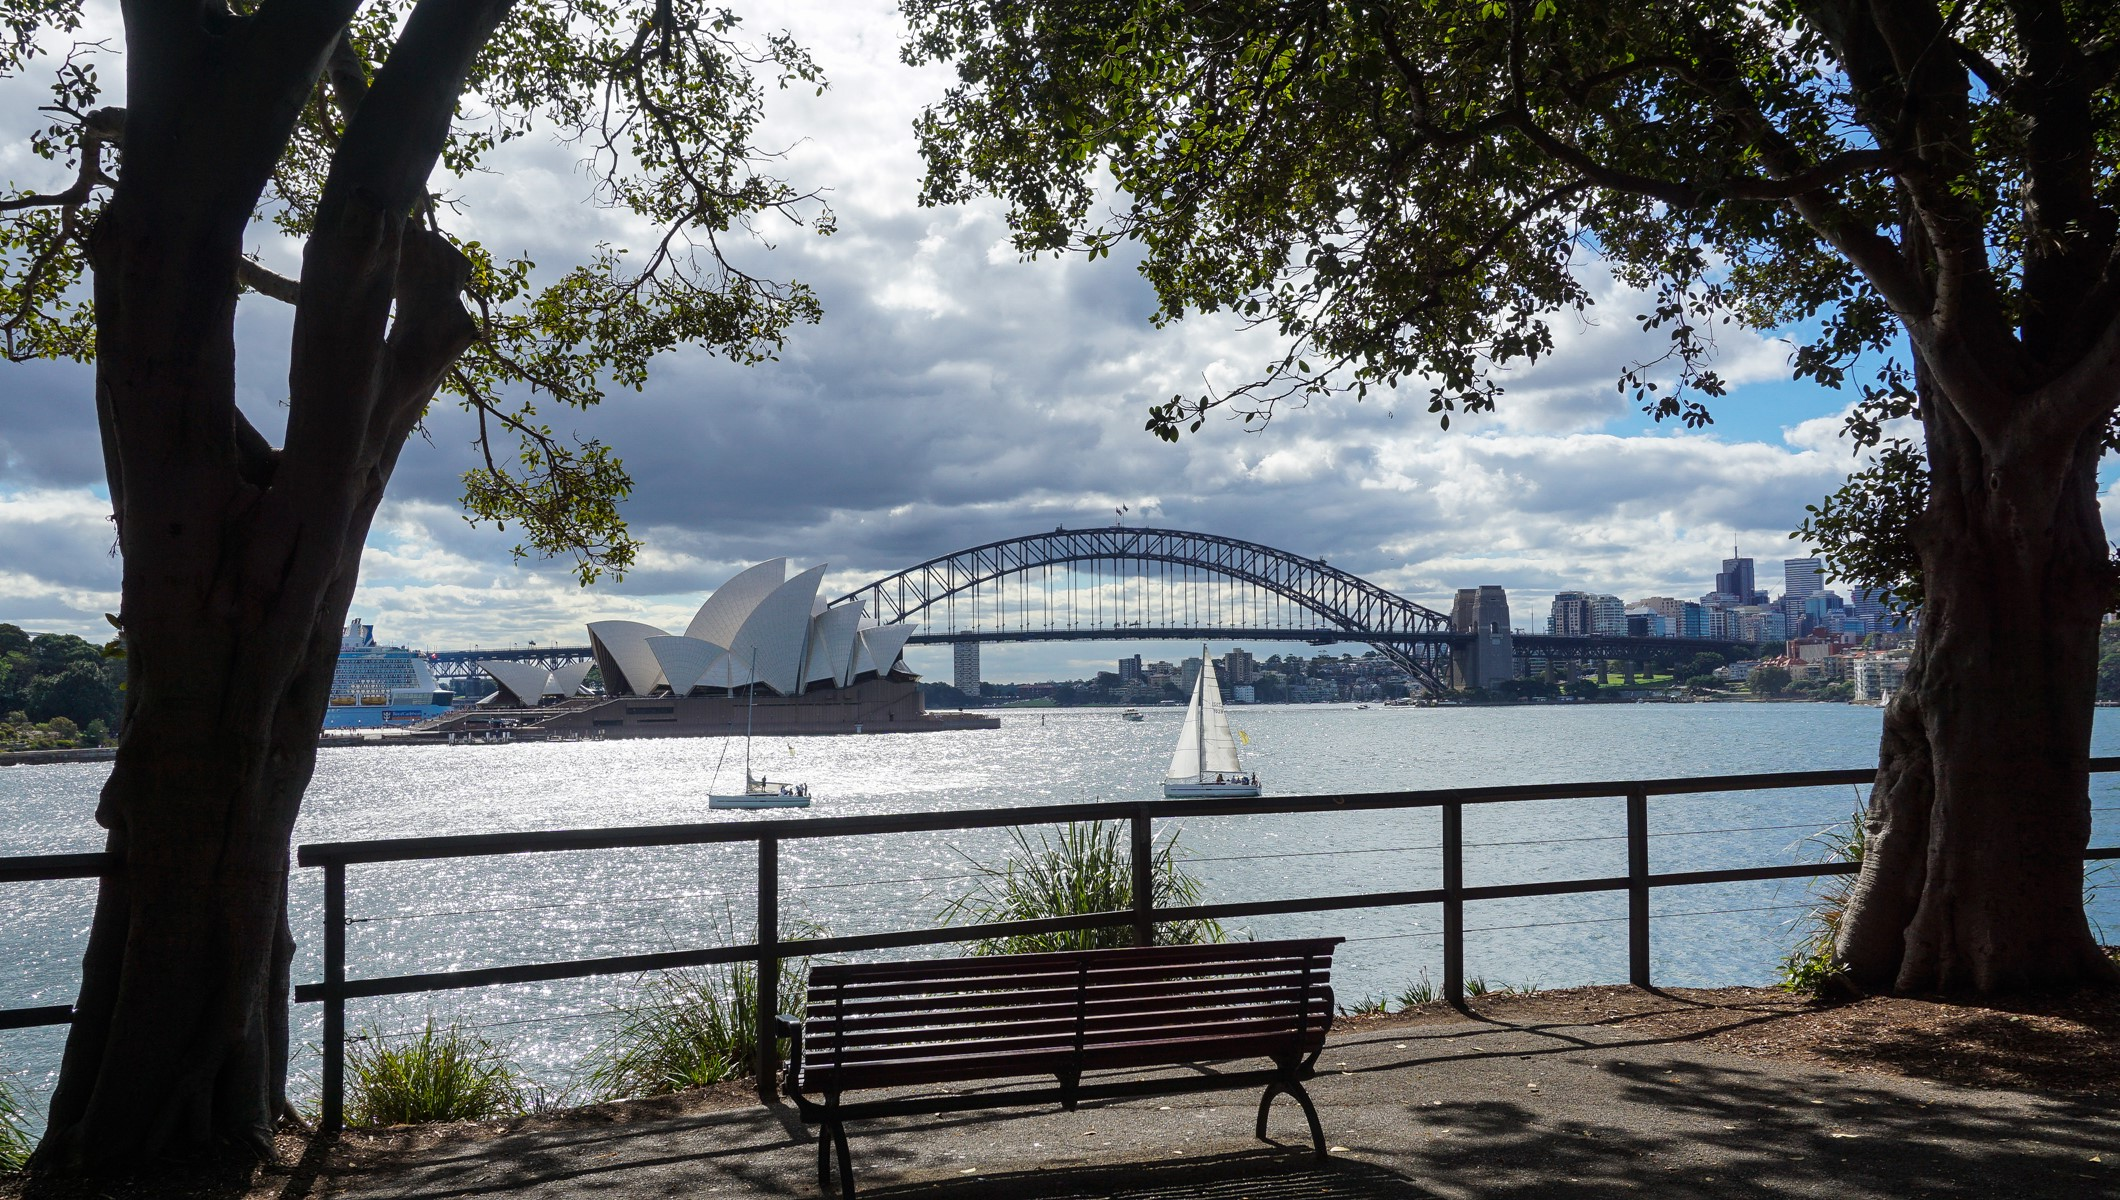 Great views of Sydney opera house and Harbour bridge from Botanical garden in Sydney